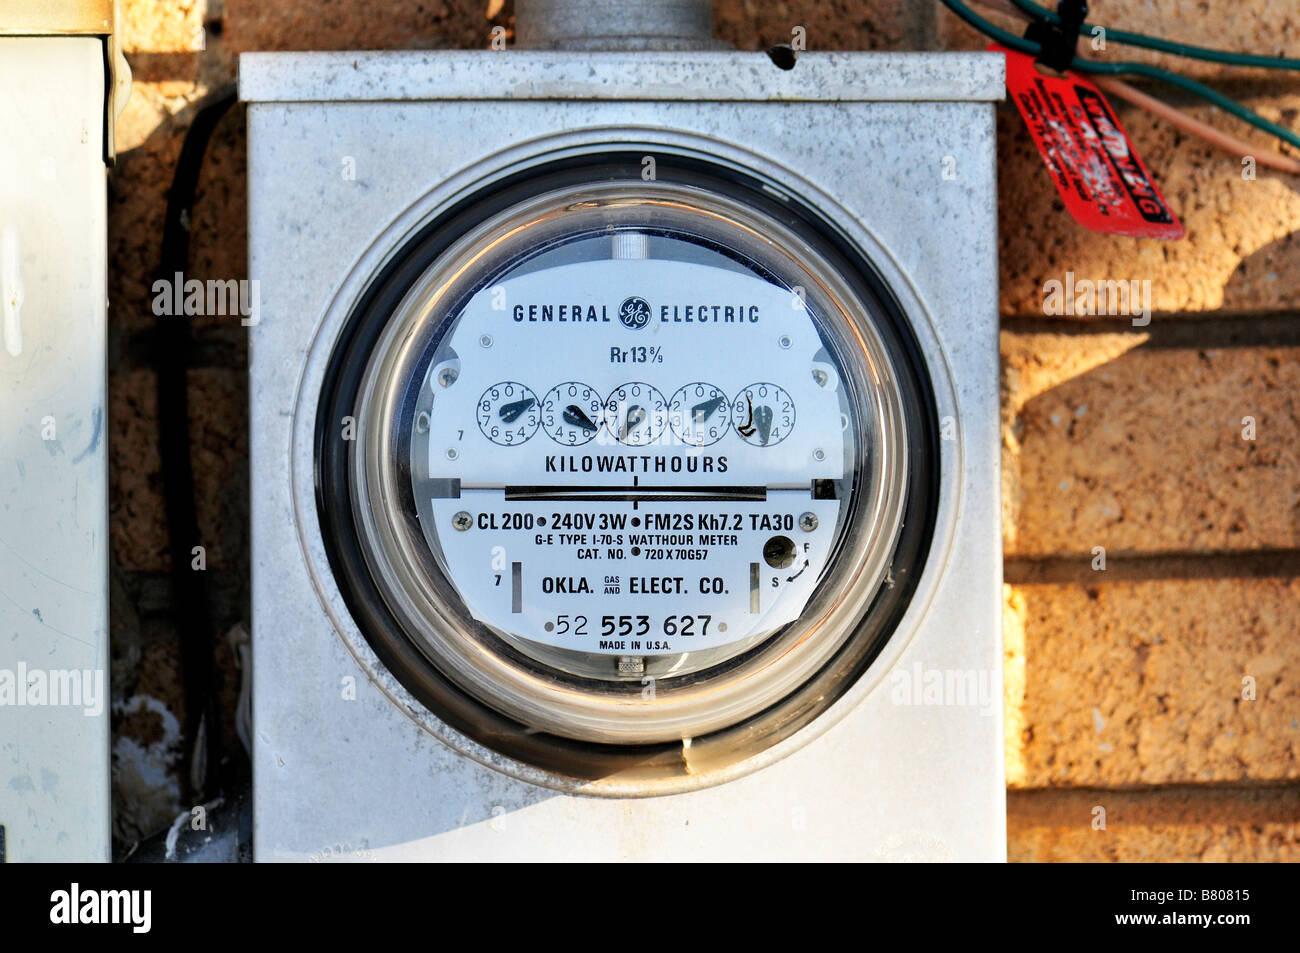 A residential electrical meter. Oklahoma, USA. - Stock Image